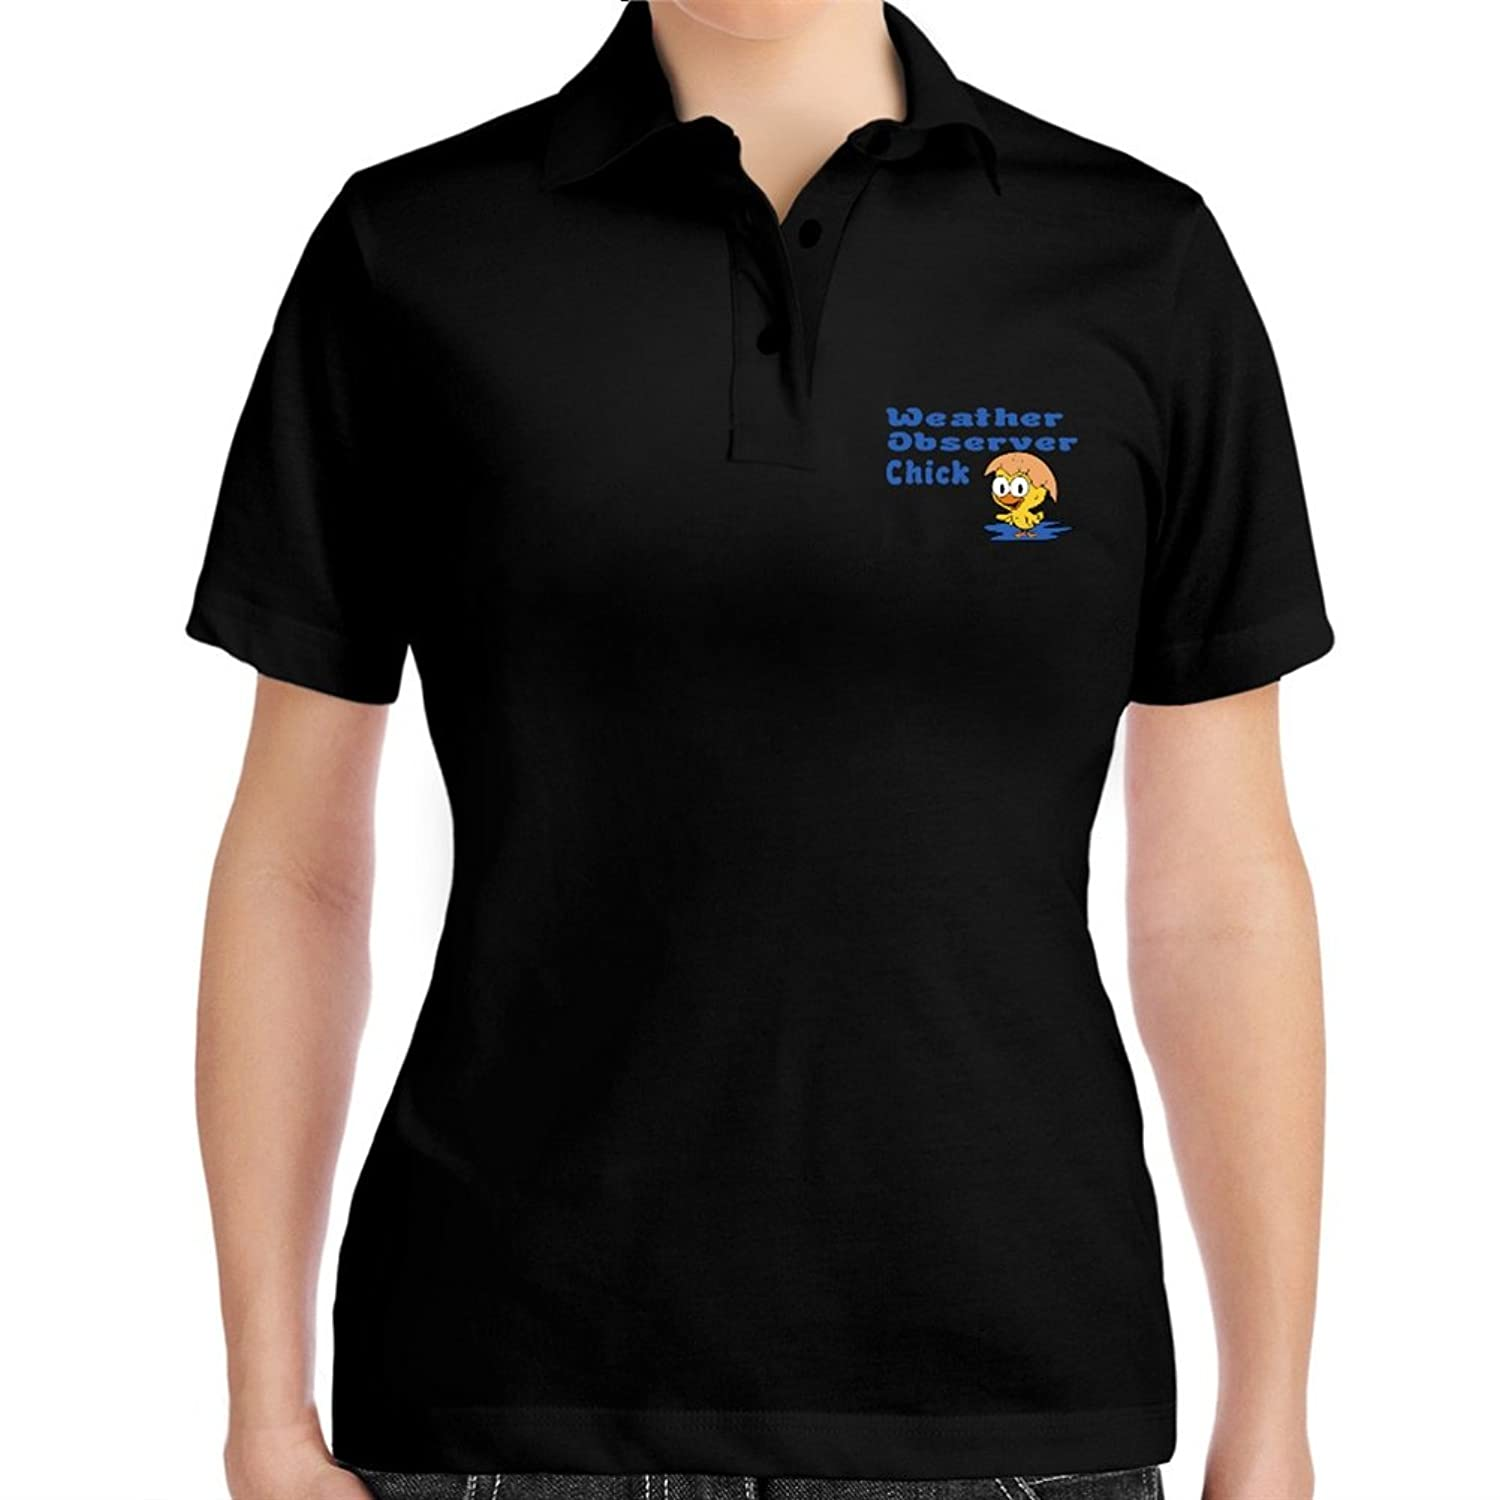 Weather Observer chick Women Polo Shirt